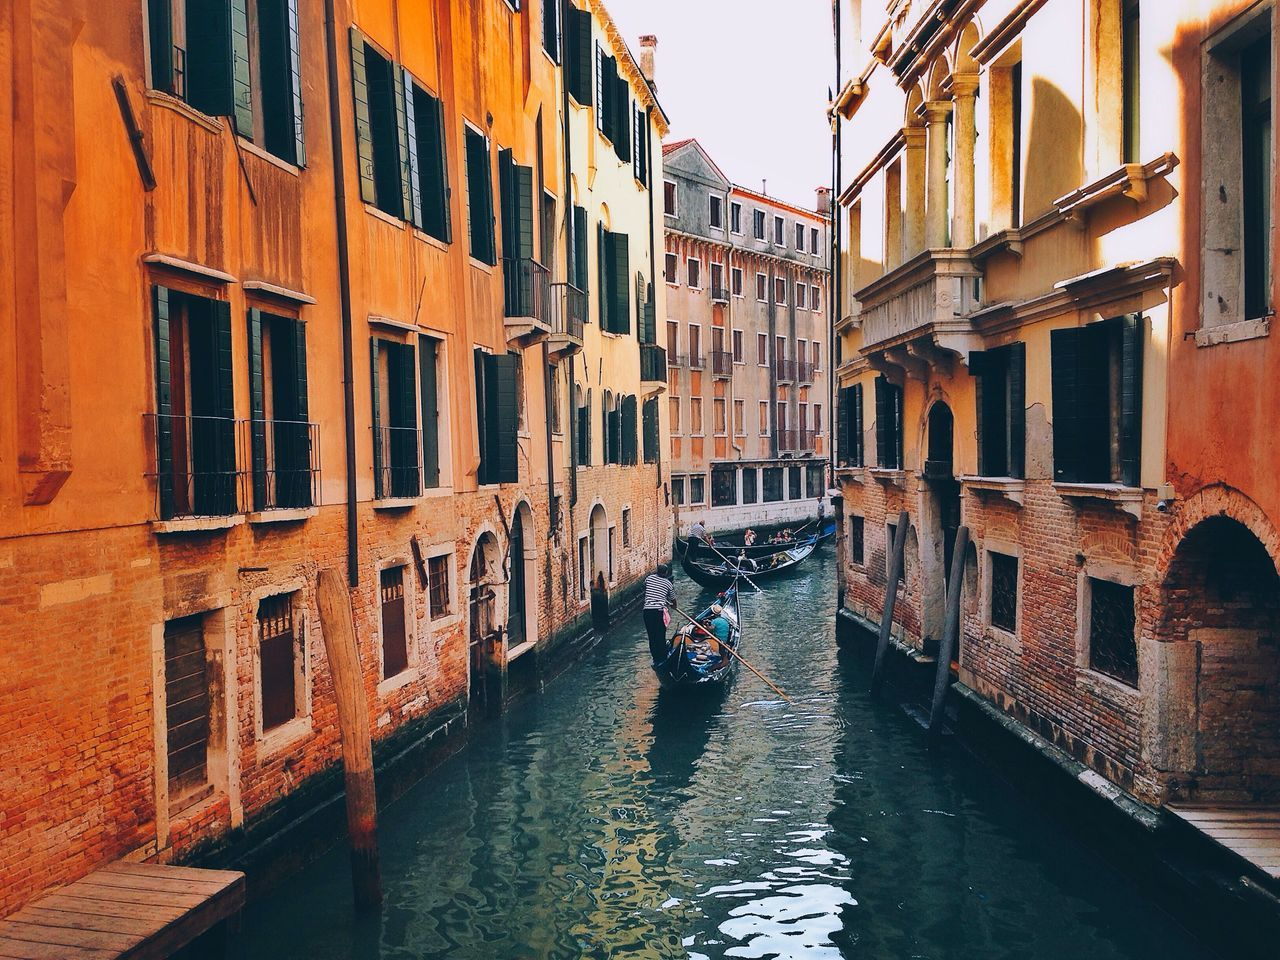 Colorful City Italy Love Cityscape City Life Gondola Built Structure Building Building Exterior Architecture Gondola - Traditional Boat Water Colors Sunset Sunlight Light And Shadow Landscape Lifestyles Life Travel Transportation Outdoors People View